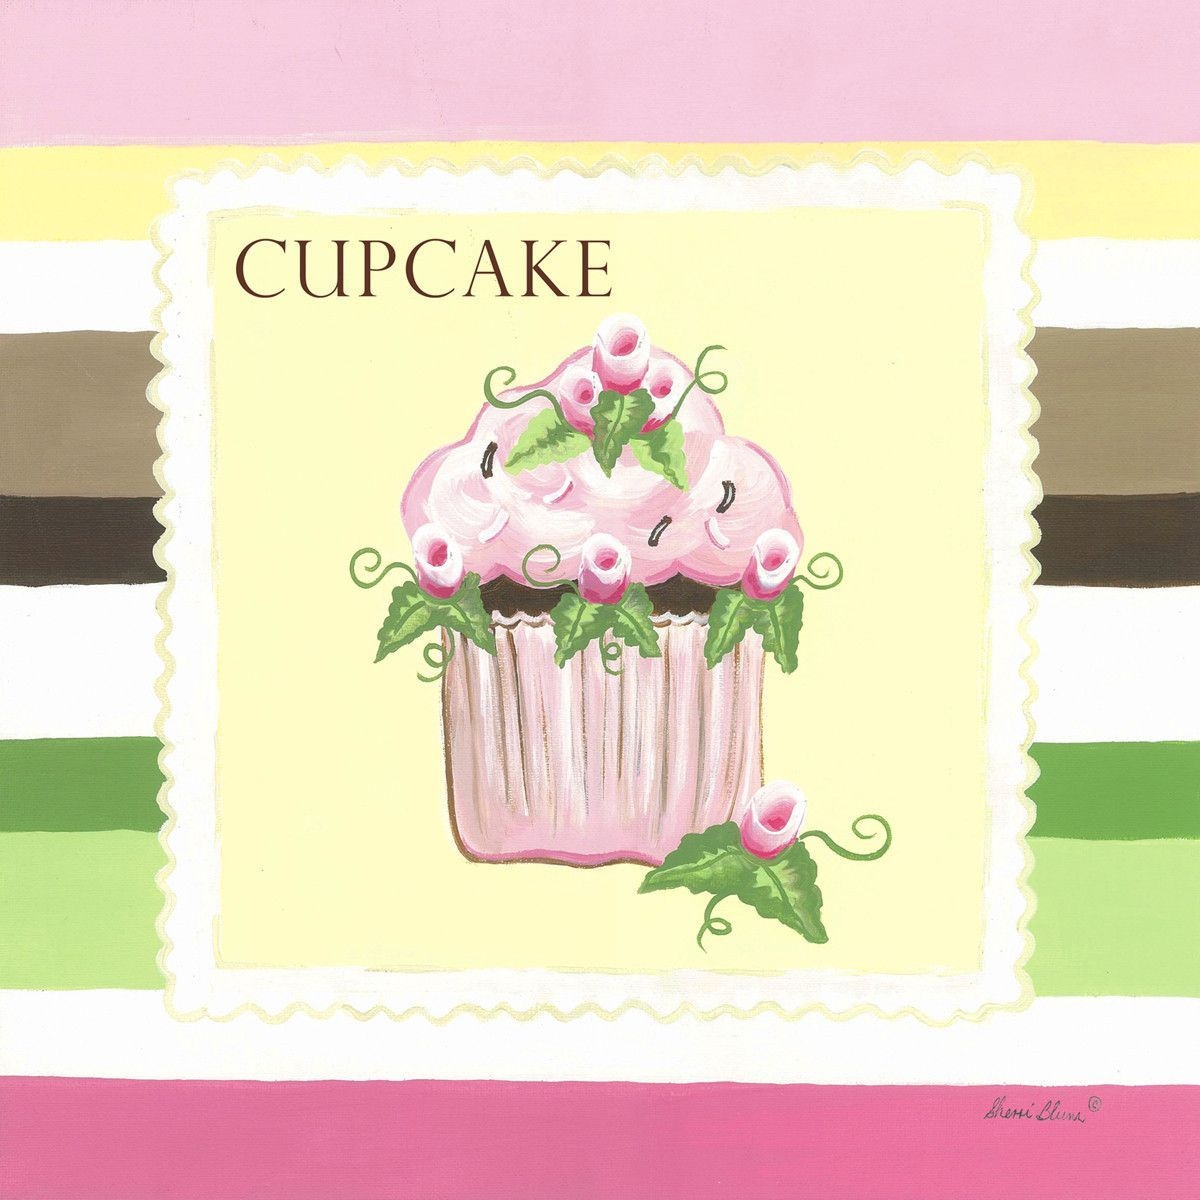 Sweet Treat Cupcake | Canvas Wall Art | Canvases and Products